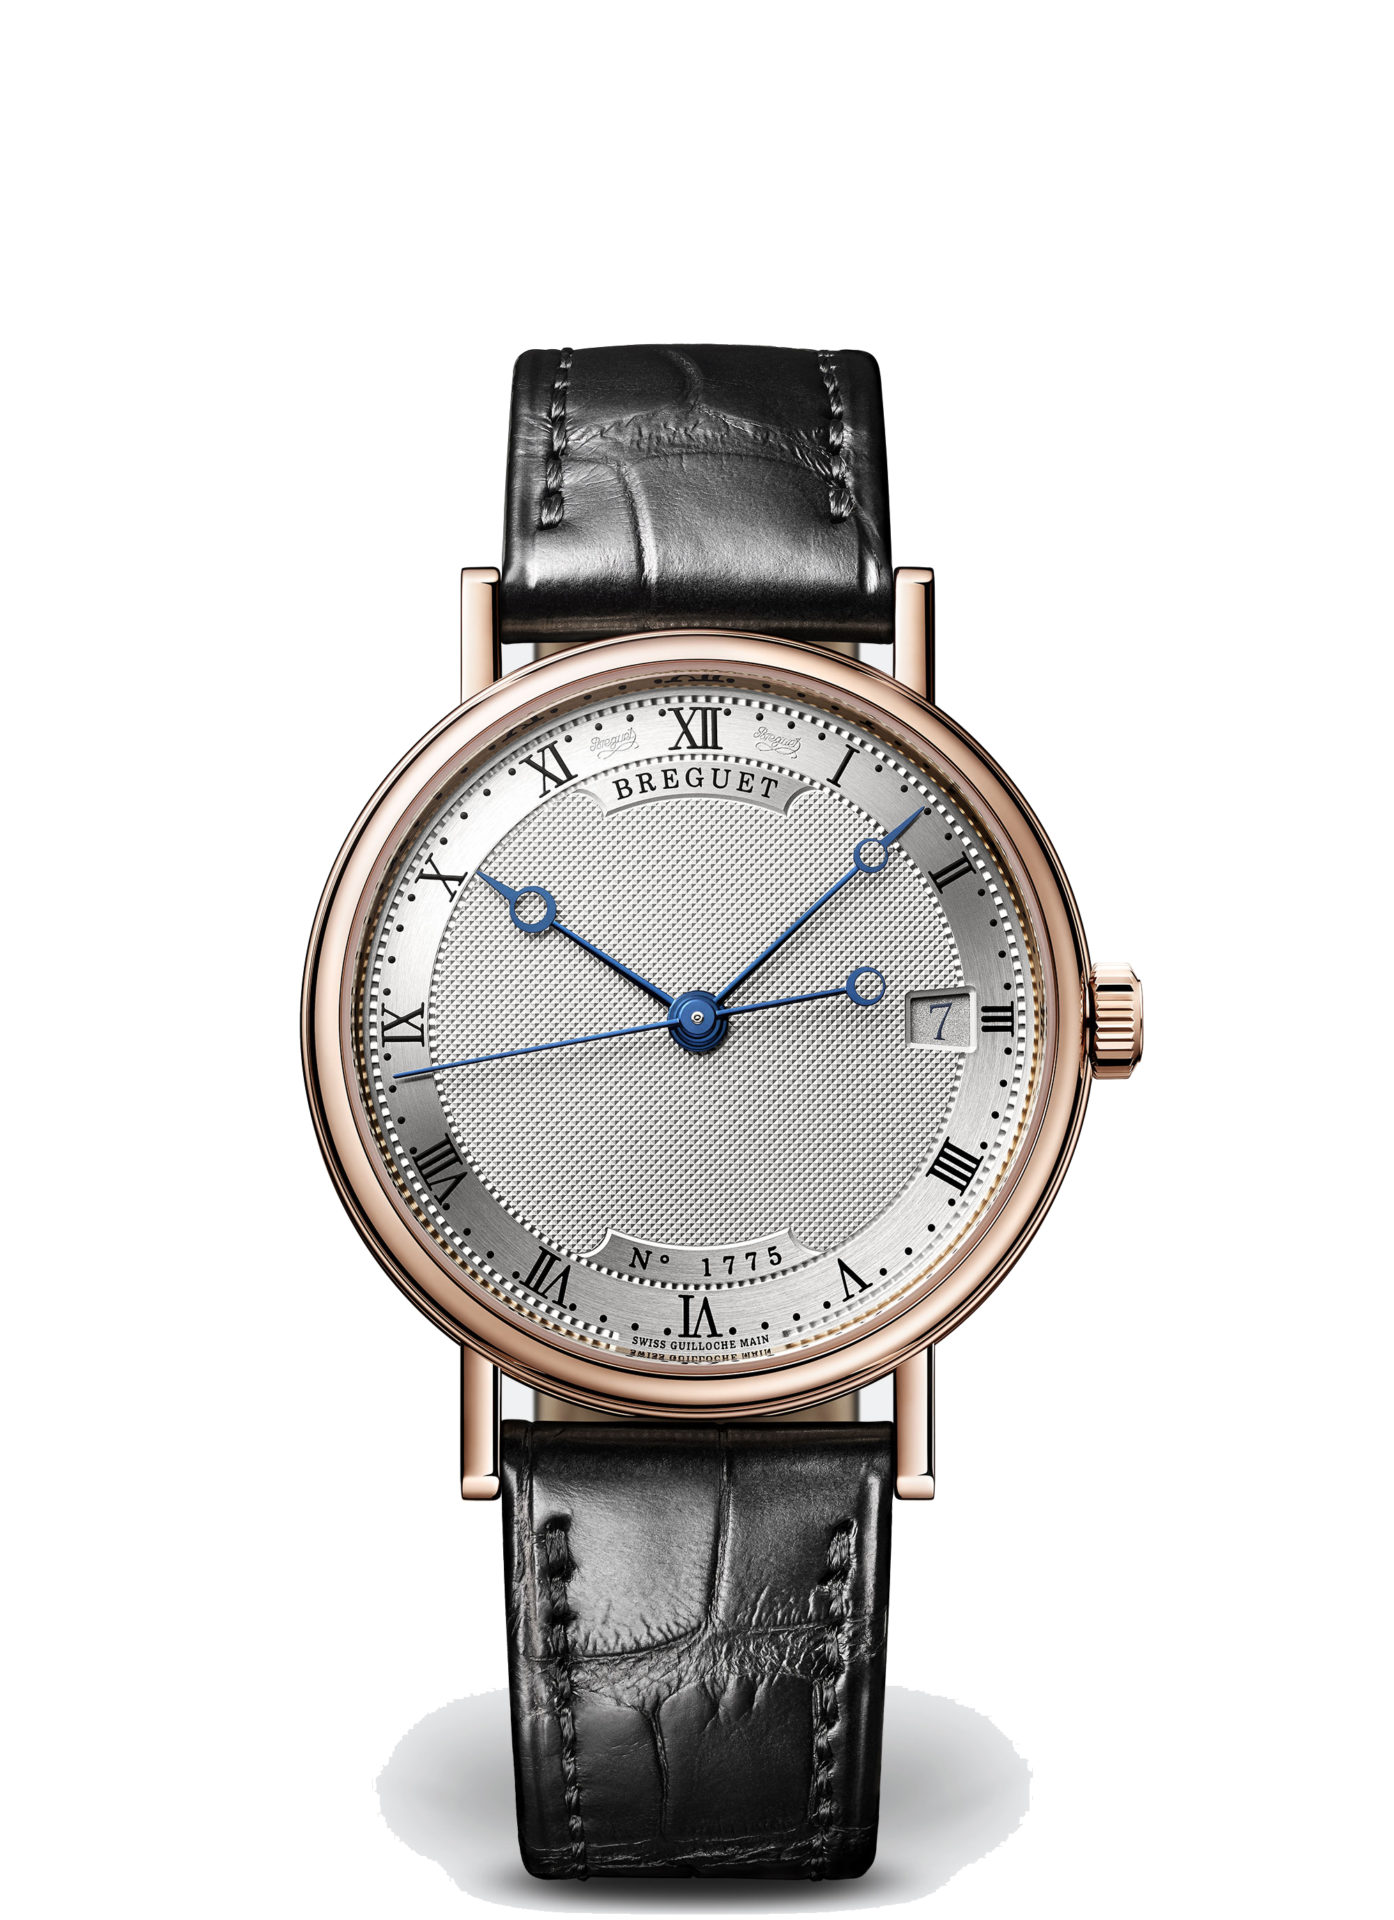 Breguet-Classique-9067-Hall-of-Time-9067br-12-97